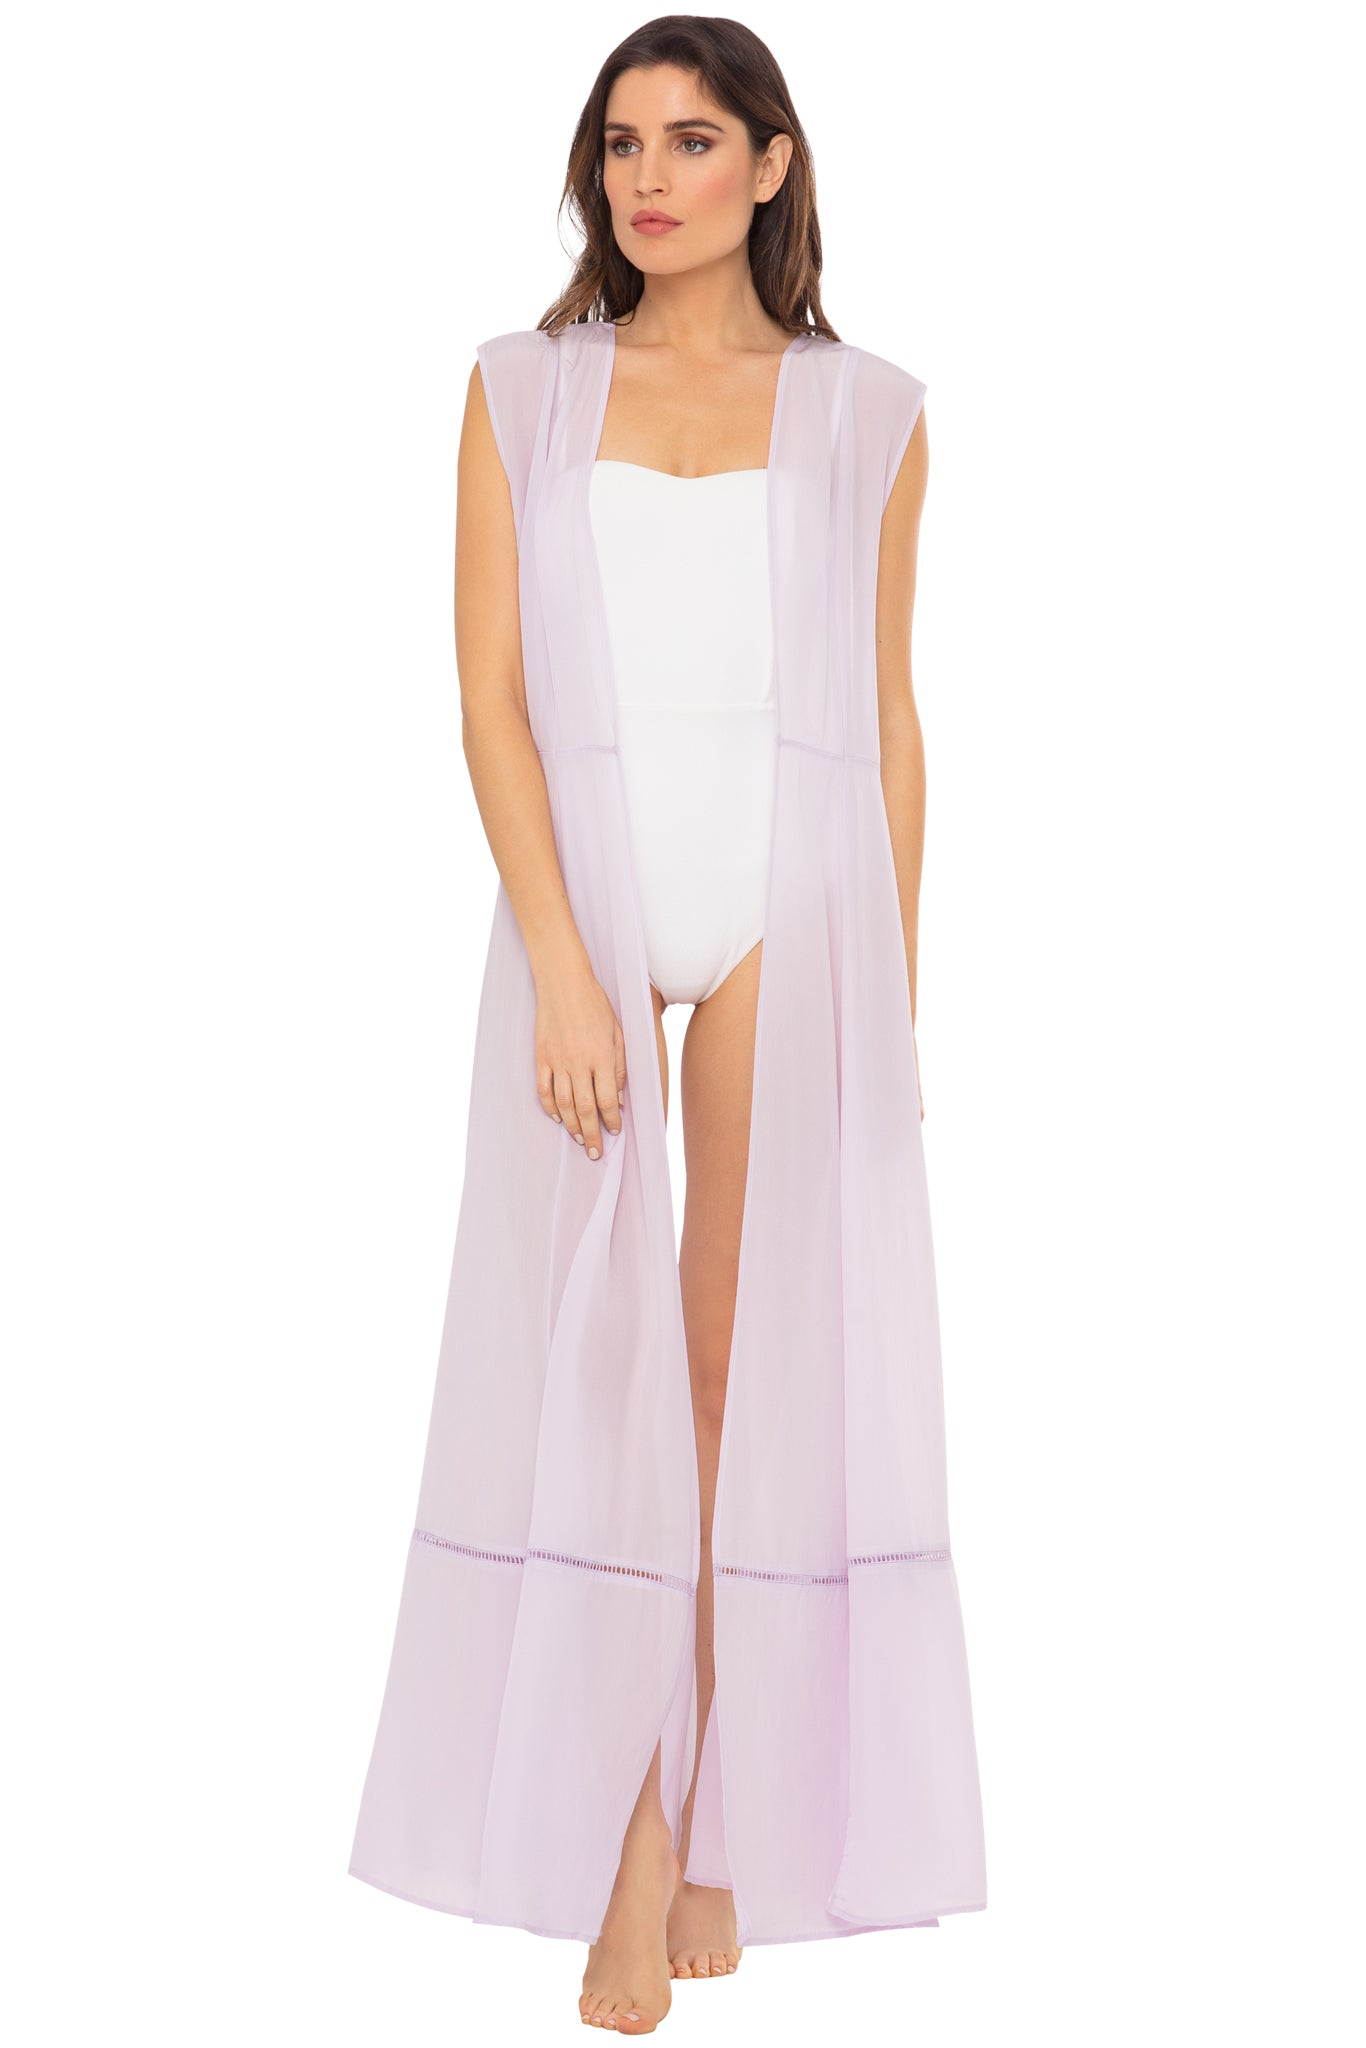 Audrey Sleeveless Maxi Duster - Orchid